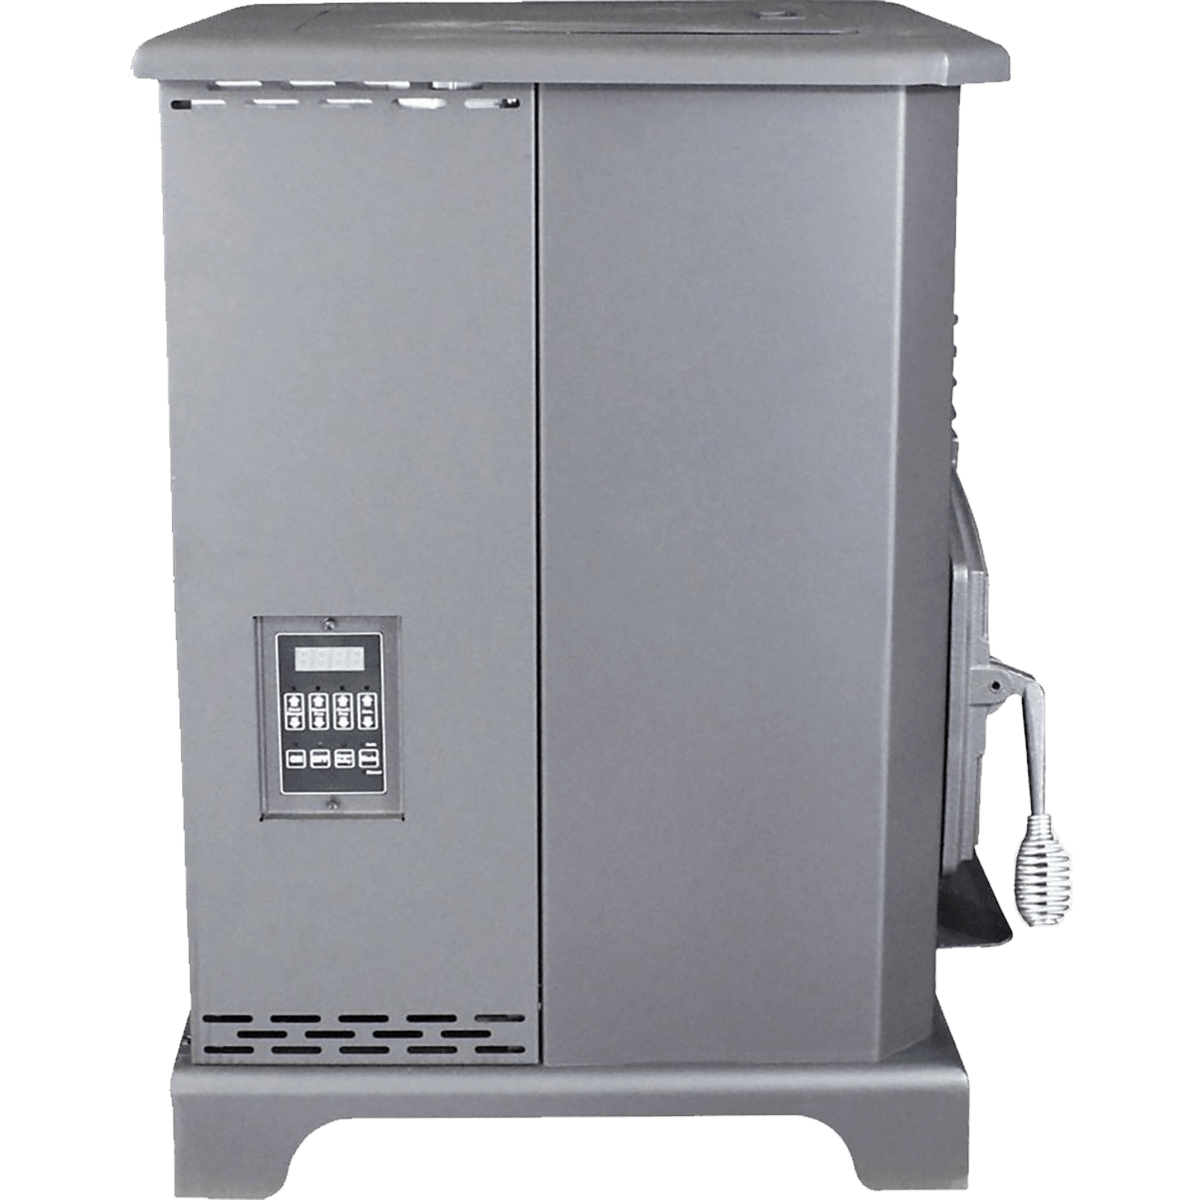 US Stove 5500M Pellet Stove - Free Shipping | Sylvane on pellet stove heat recovery, pellet stove how it works, pellet stove thermostat wiring, pellet stove control panel, pellet stove maintenance, pellet stove fuses, pellet stove installation, pellet stove inserts, pellet stove igniter, pellet stoves how they work, pellet stove pellets, pellet stove window unit, pellet burning stoves function diagrams, gas stove wiring diagrams, pellet stove parts, pellet stove exhaust system, pellet stove troubleshooting, pellet stove layouts, pellet stove dimensions, pellet stoves in-house,